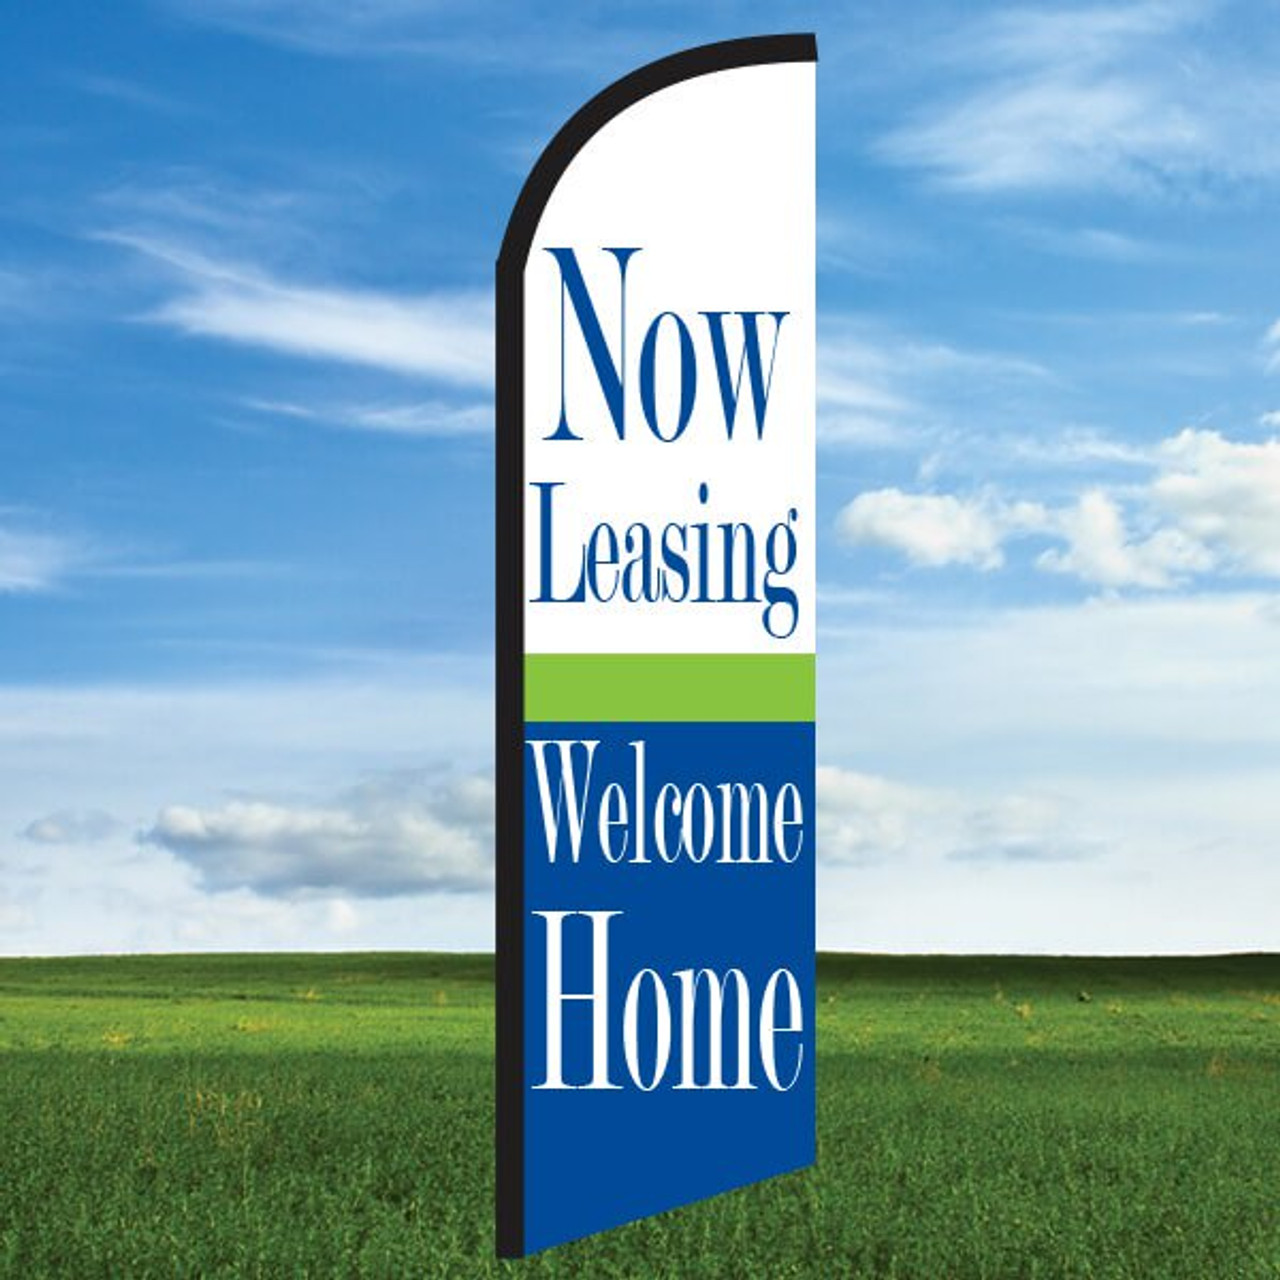 Cheerful: Now Leasing/Welcome Home- Windleasers 24/7 Widebody Flag